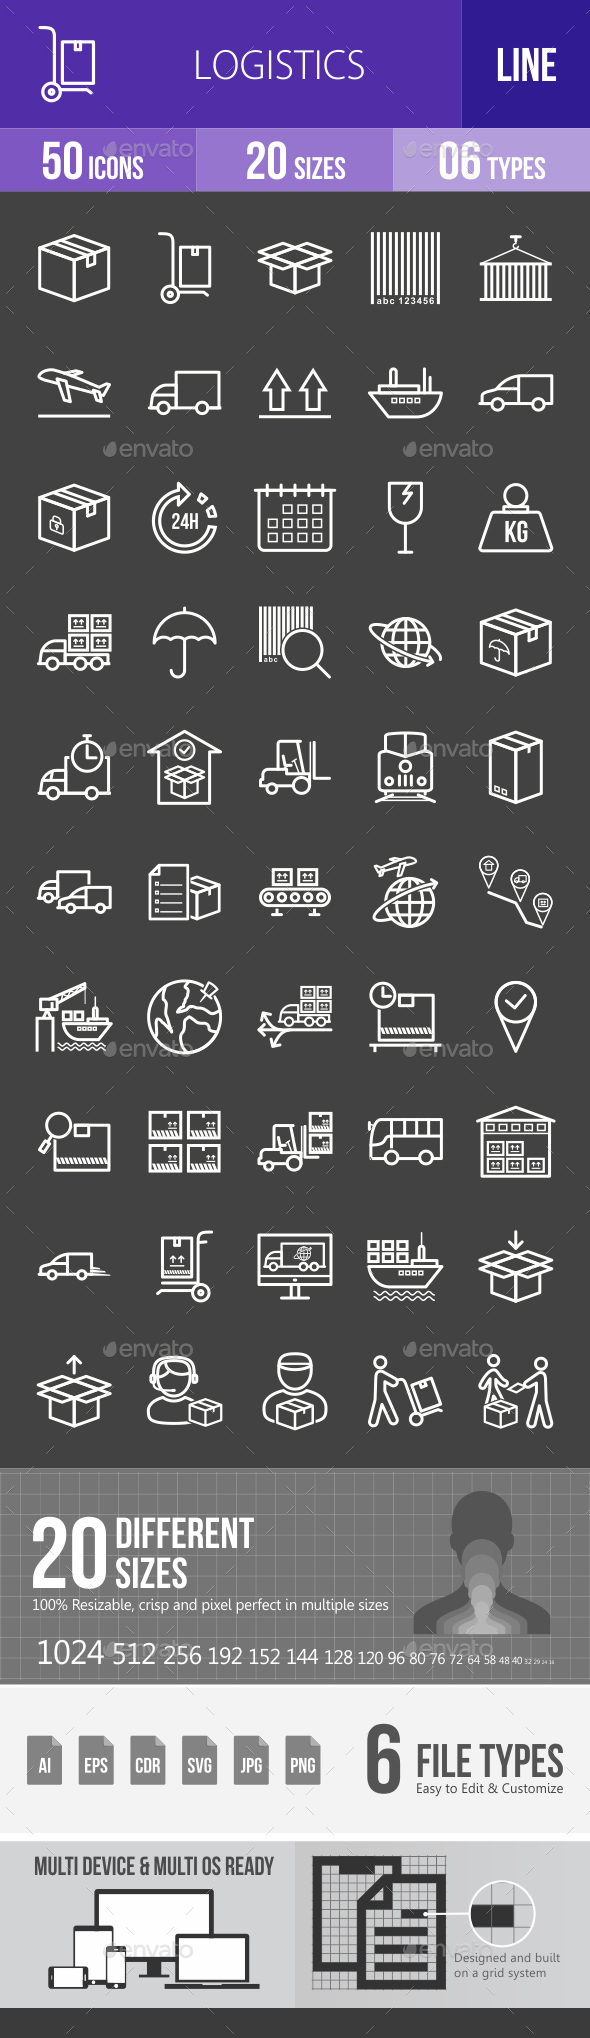 Logistics Line Inverted Icons - Icons